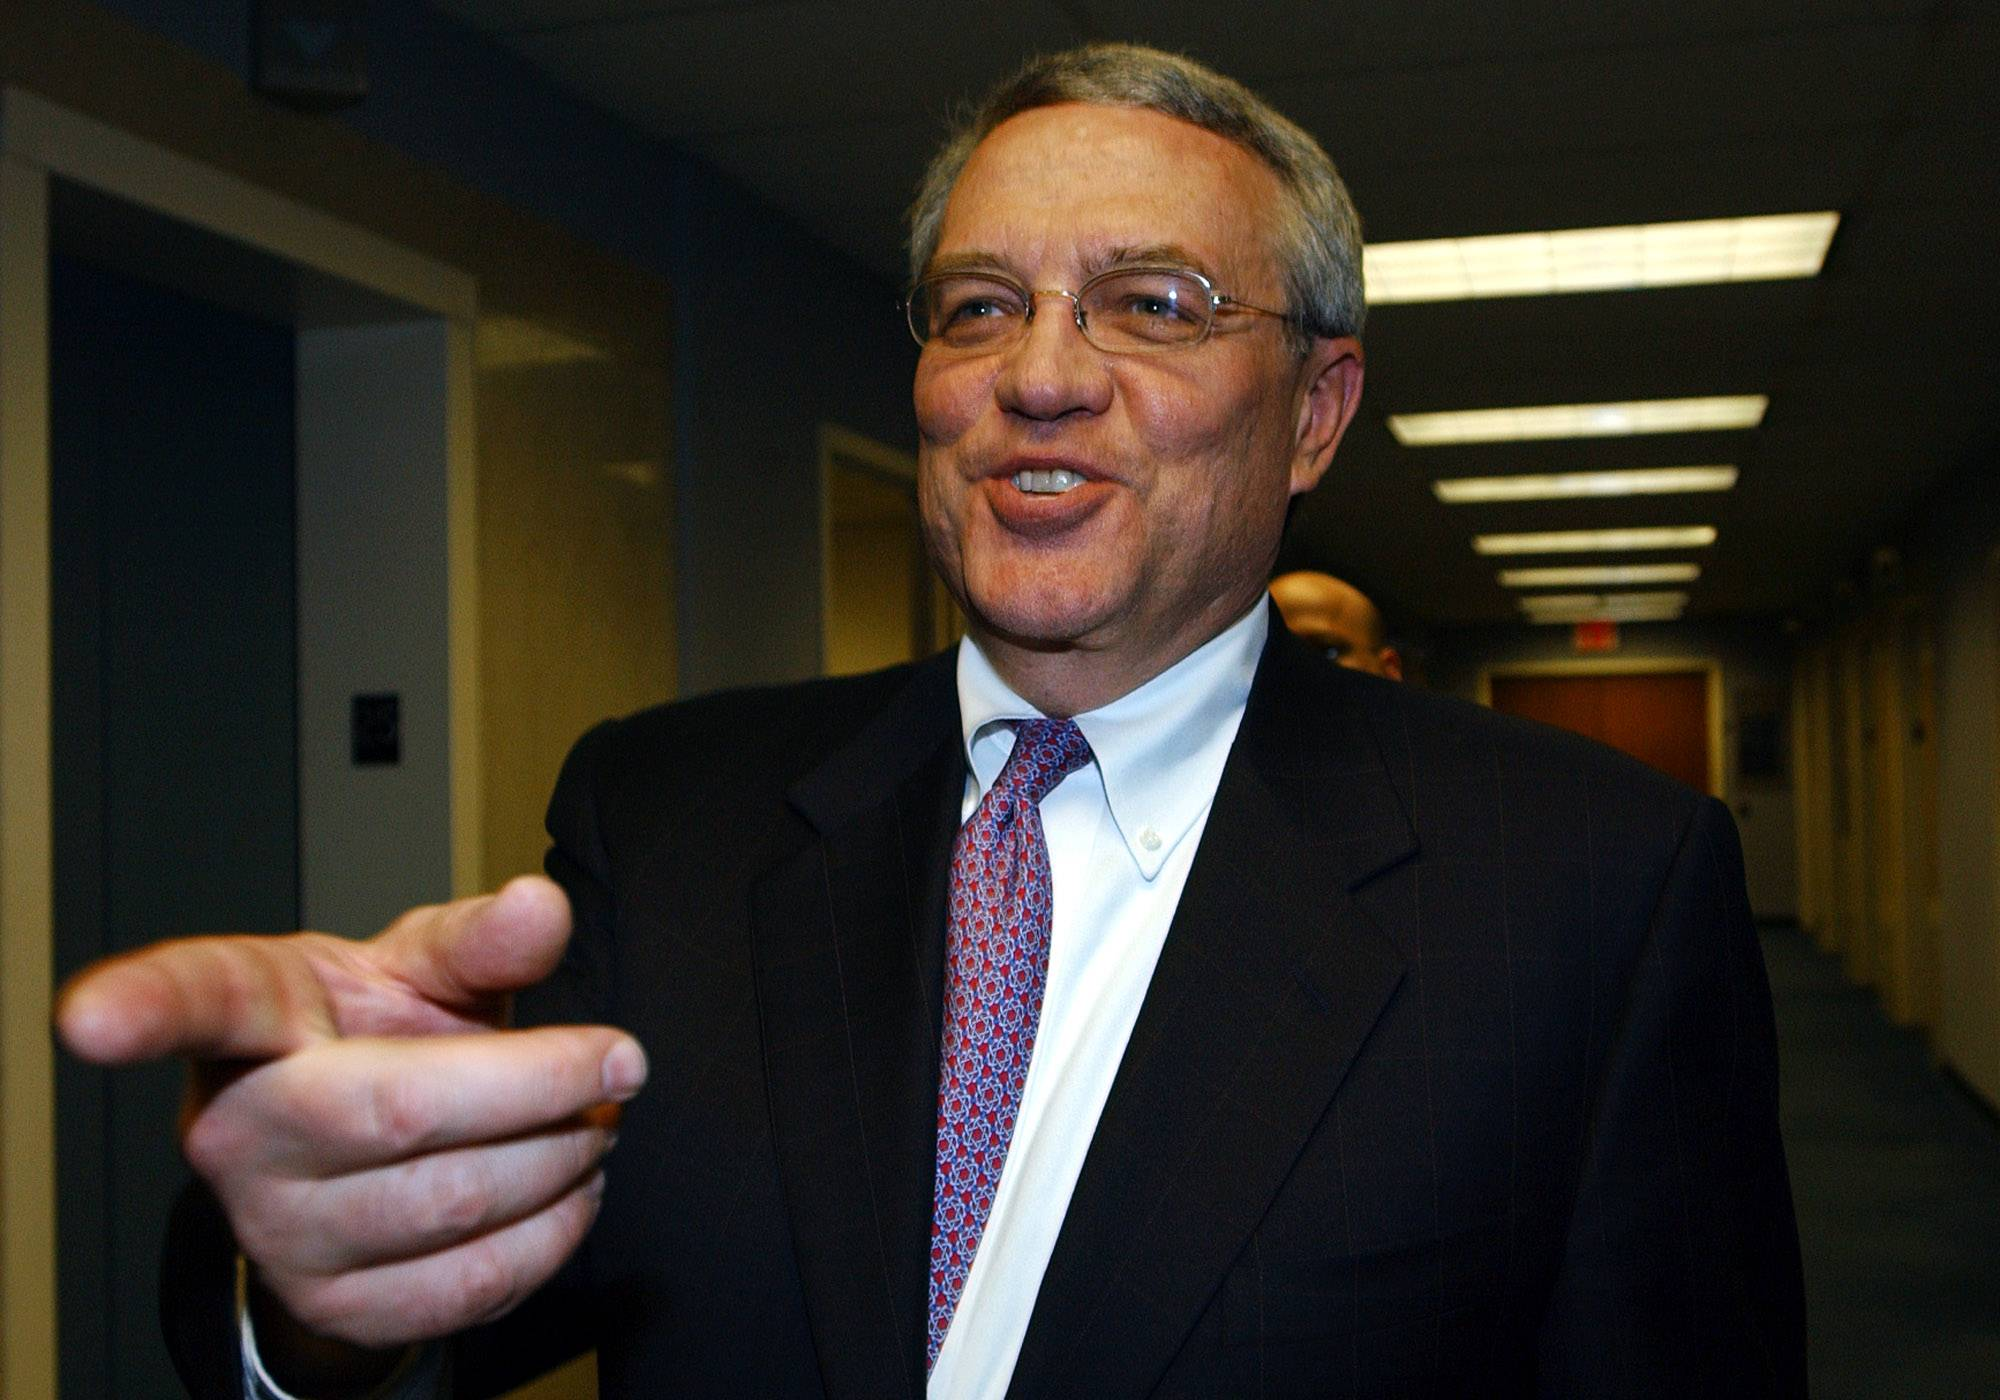 Leo Hindrey Jr., chairman and CEO of the YES Network speaks after a media conference in New York. Hindery, who wrote a book that attempts to use CEO know-how to resolve U.S. policy problems, advocates for progressive mainstays, including stronger labor protections, fewer tax loopholes and more transparency in political spending.